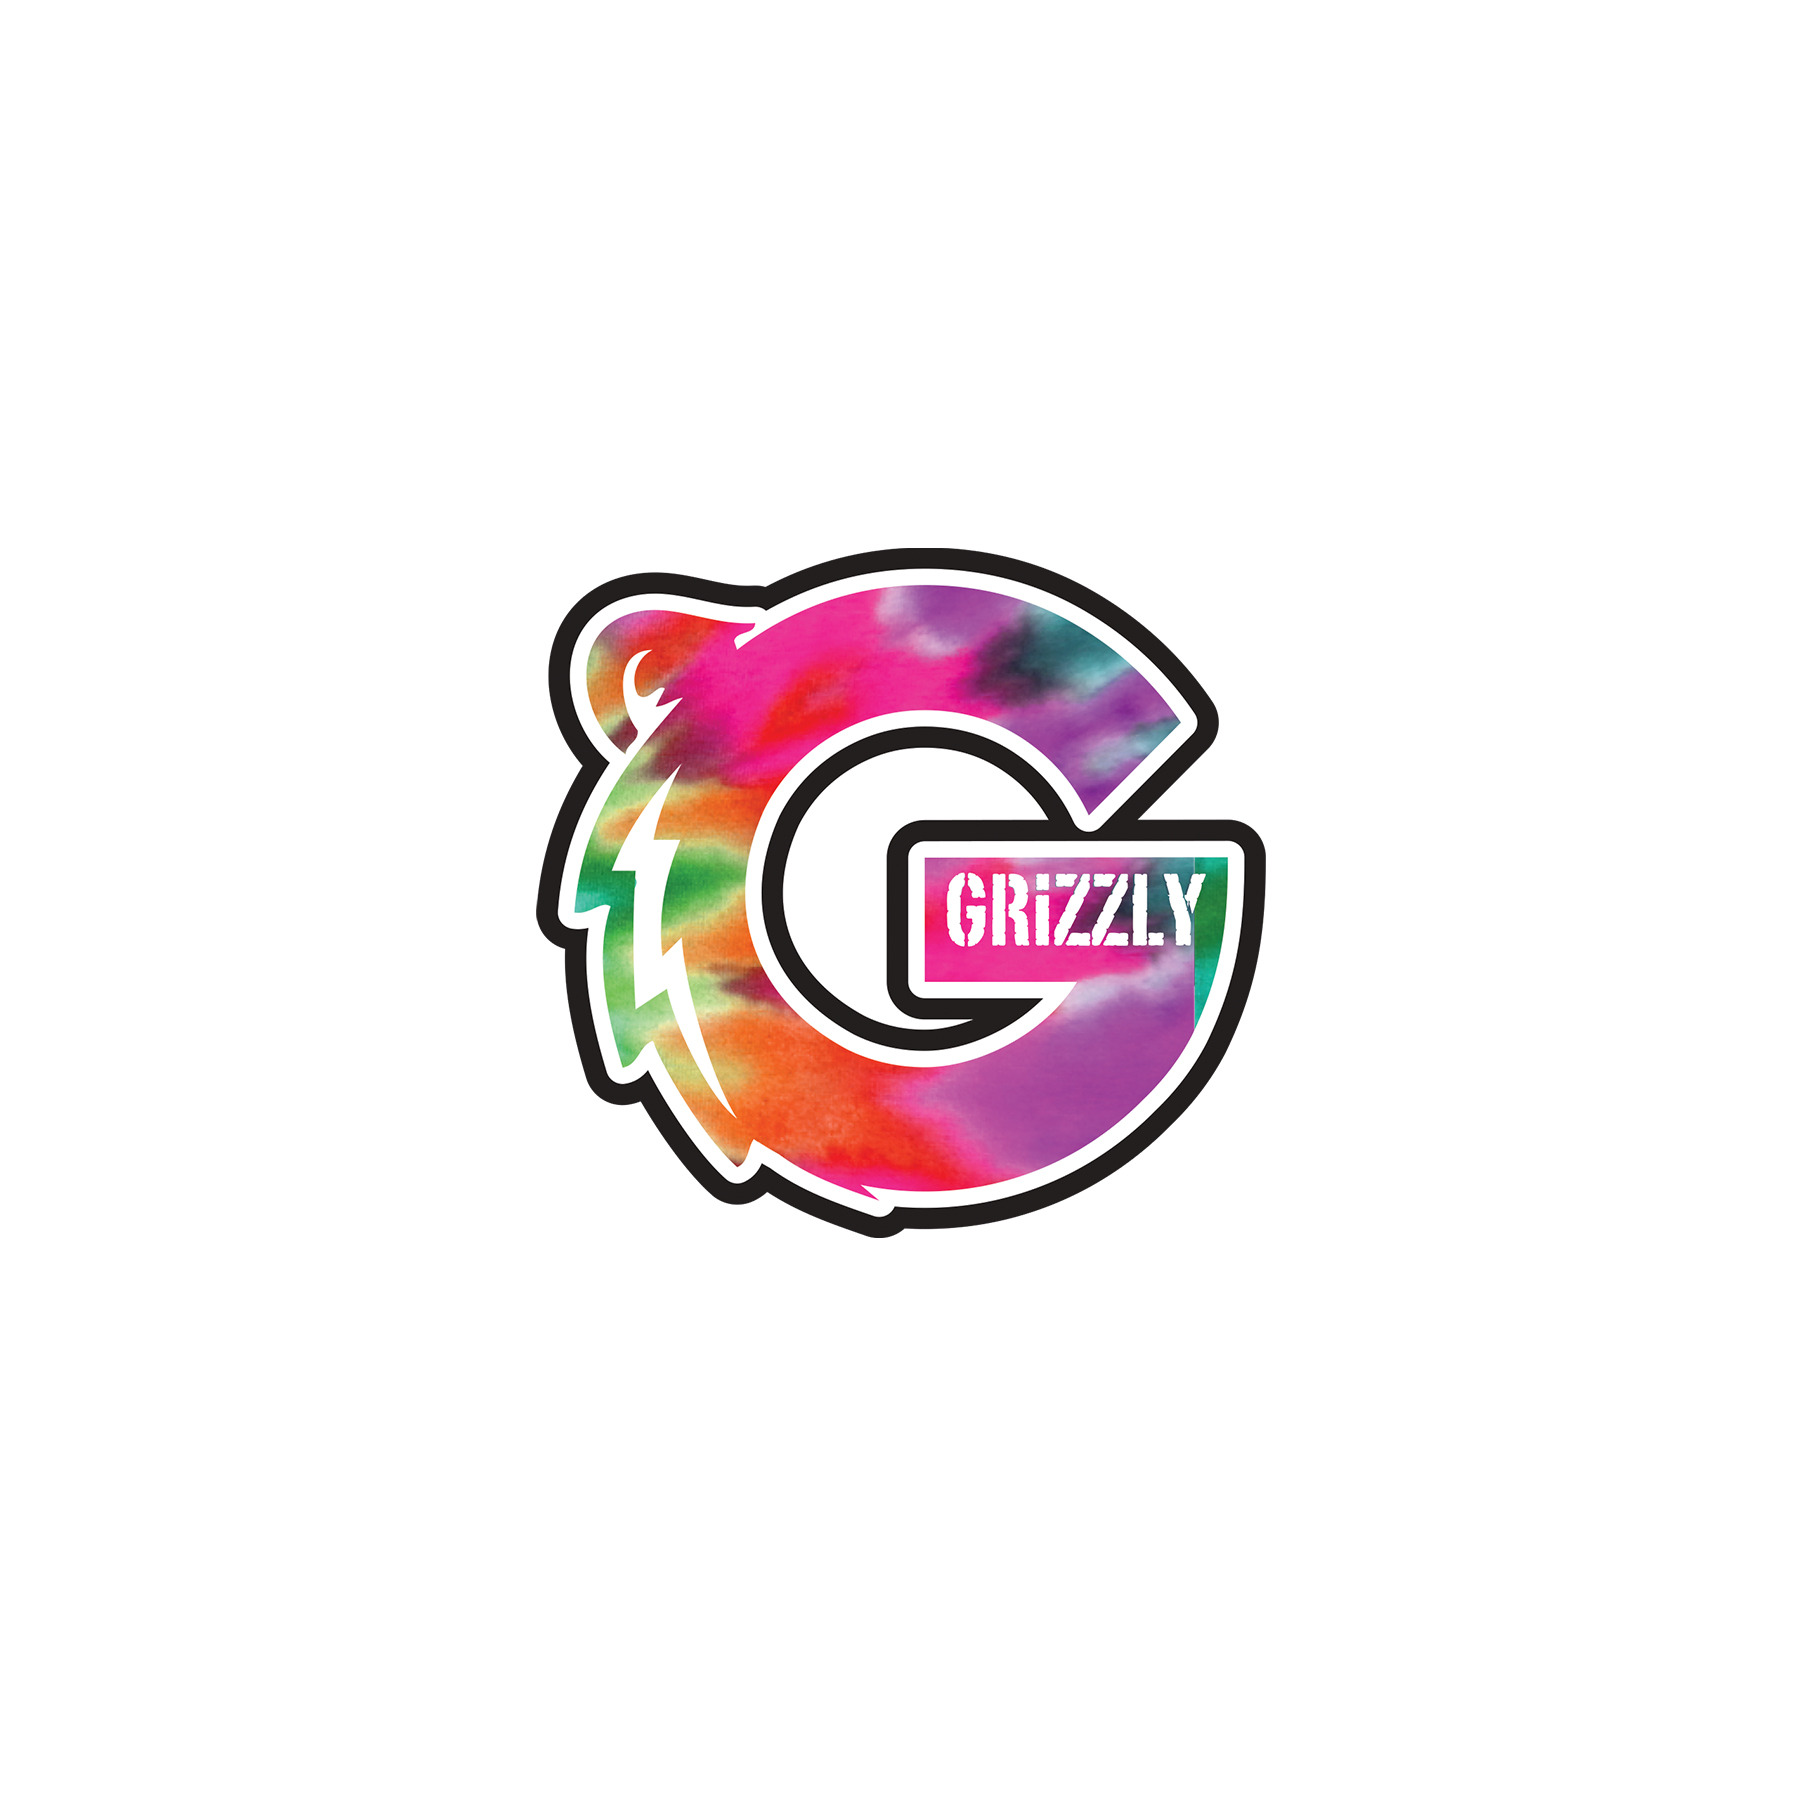 Grizzly Grip Wallpapers 1800x1800